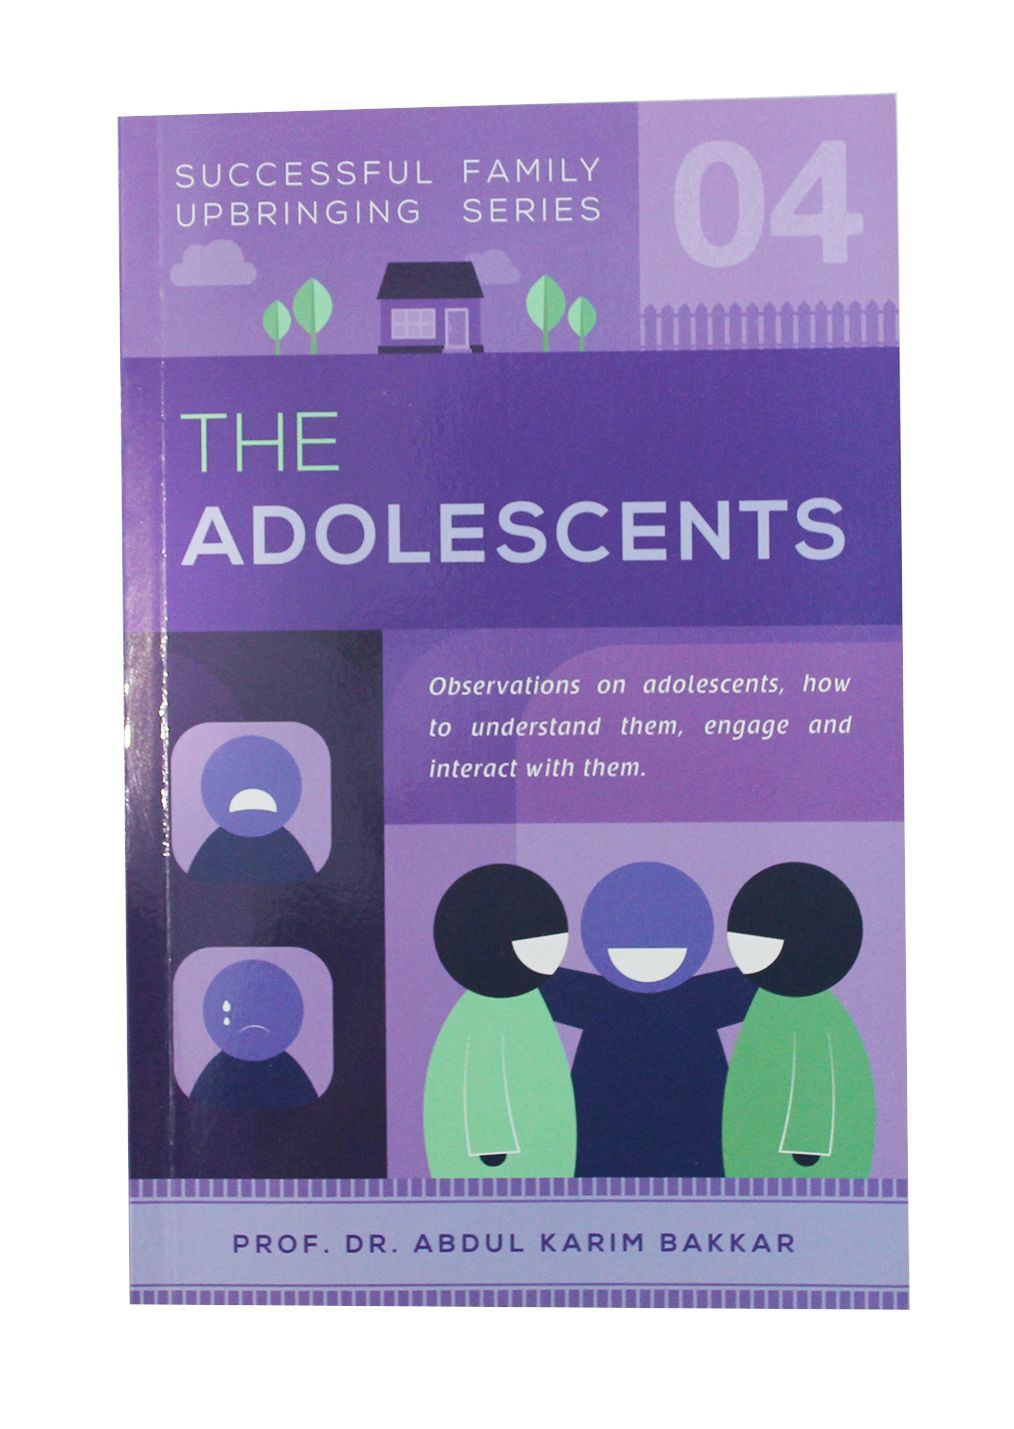 Successful-Family-Upbringing-Series-04-–-The-Adolescents-f.jpg